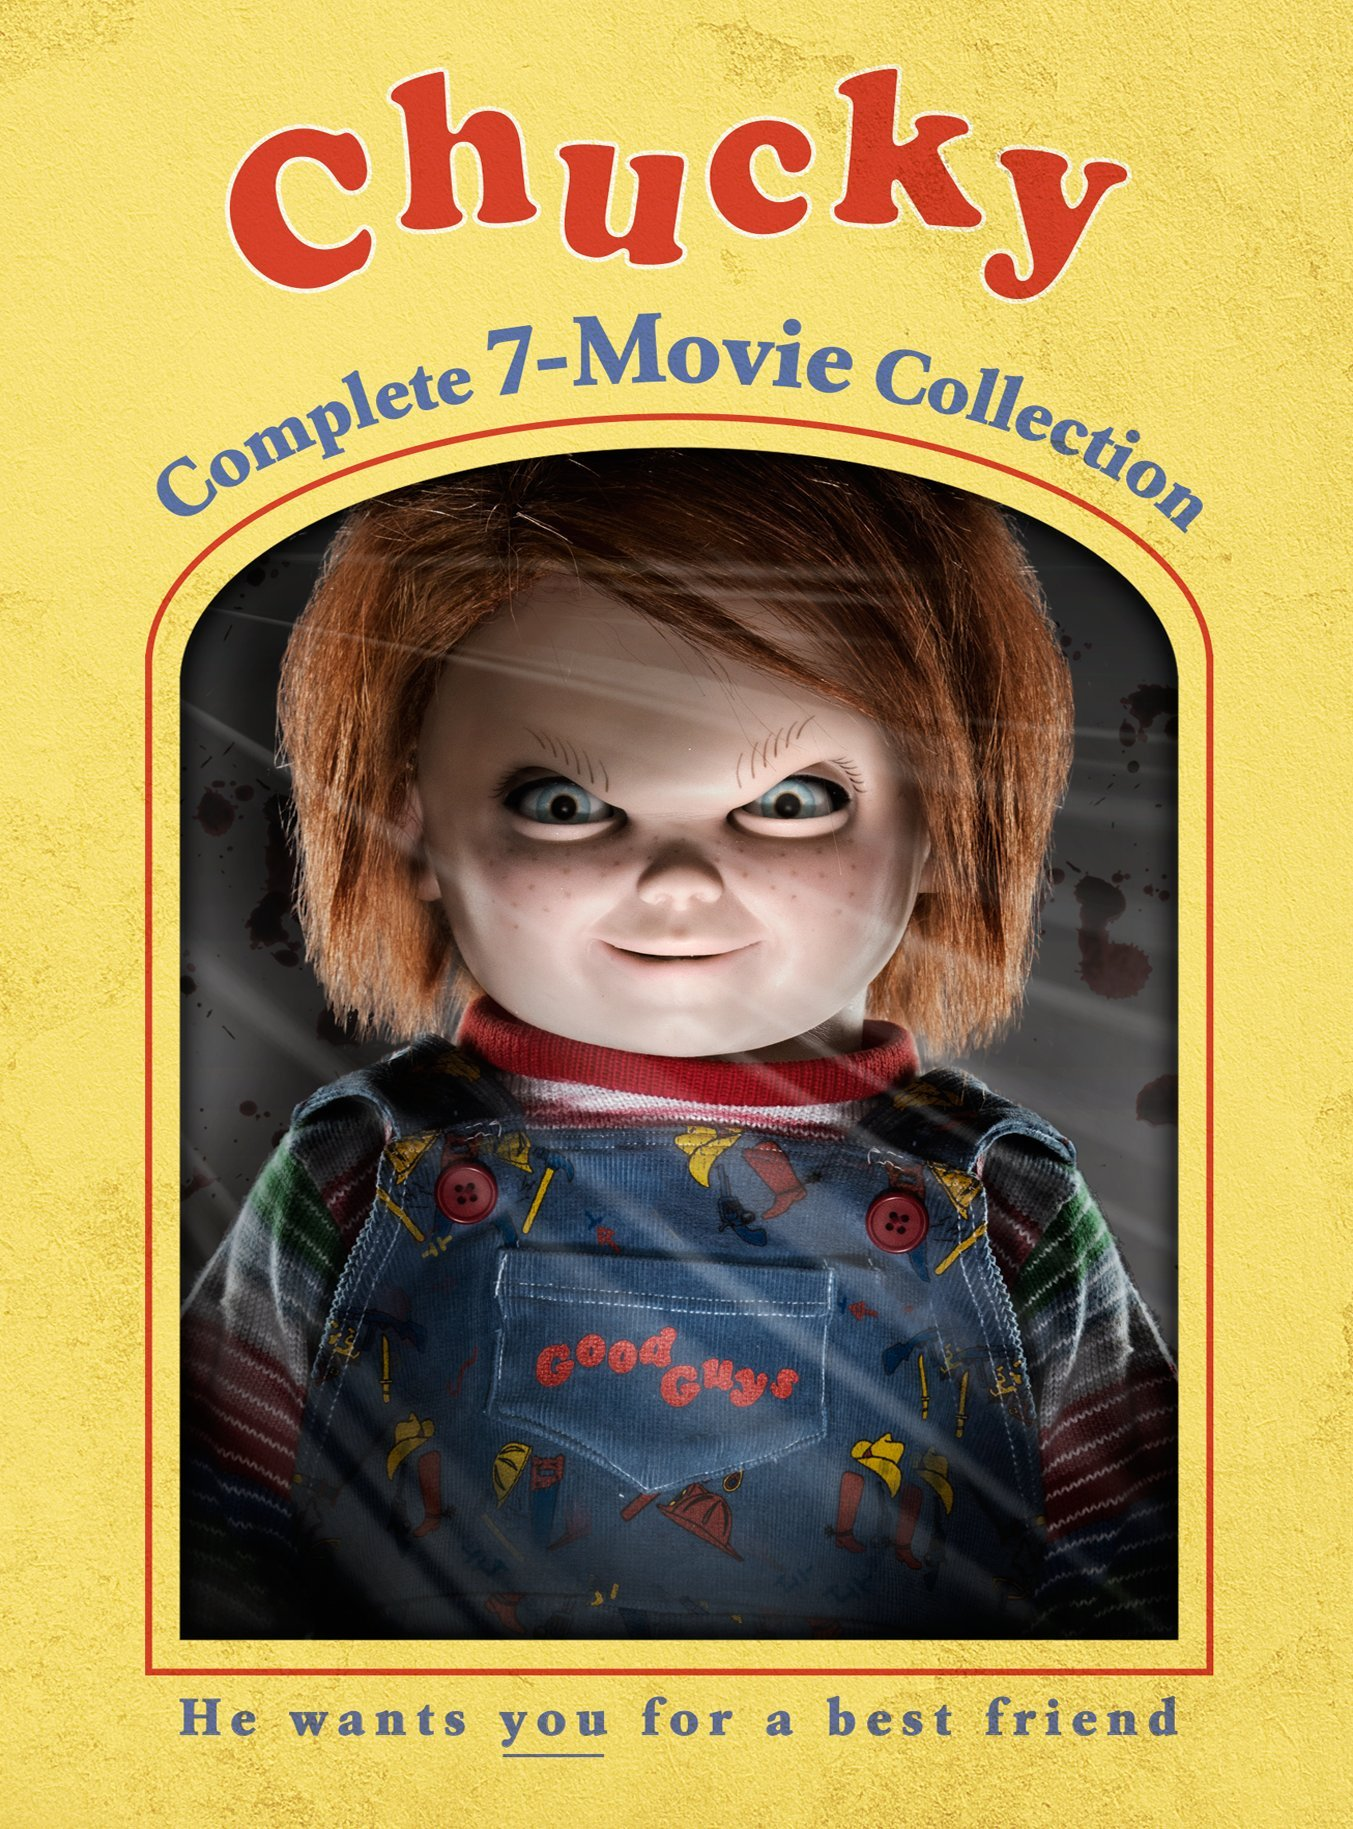 Chucky: Complete 7-Movie Collection by Universal Studios